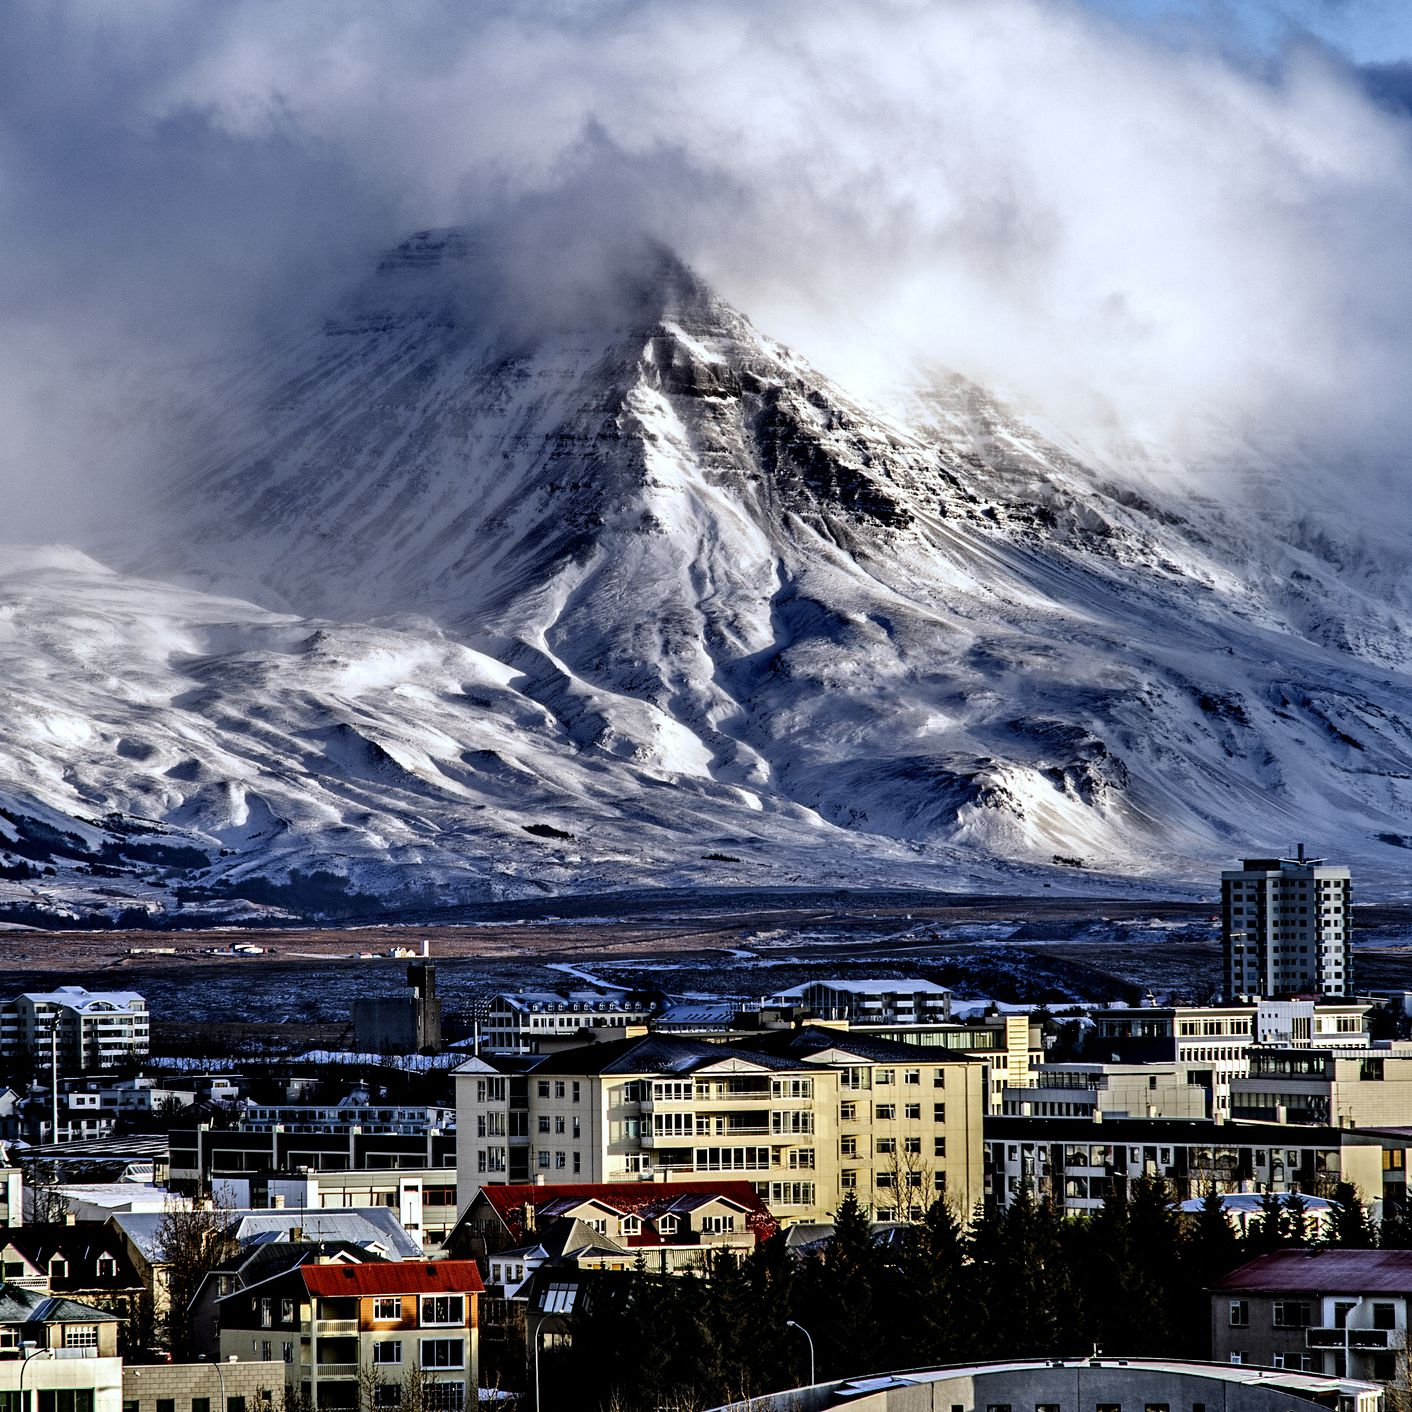 How to Find Jobs in Iceland